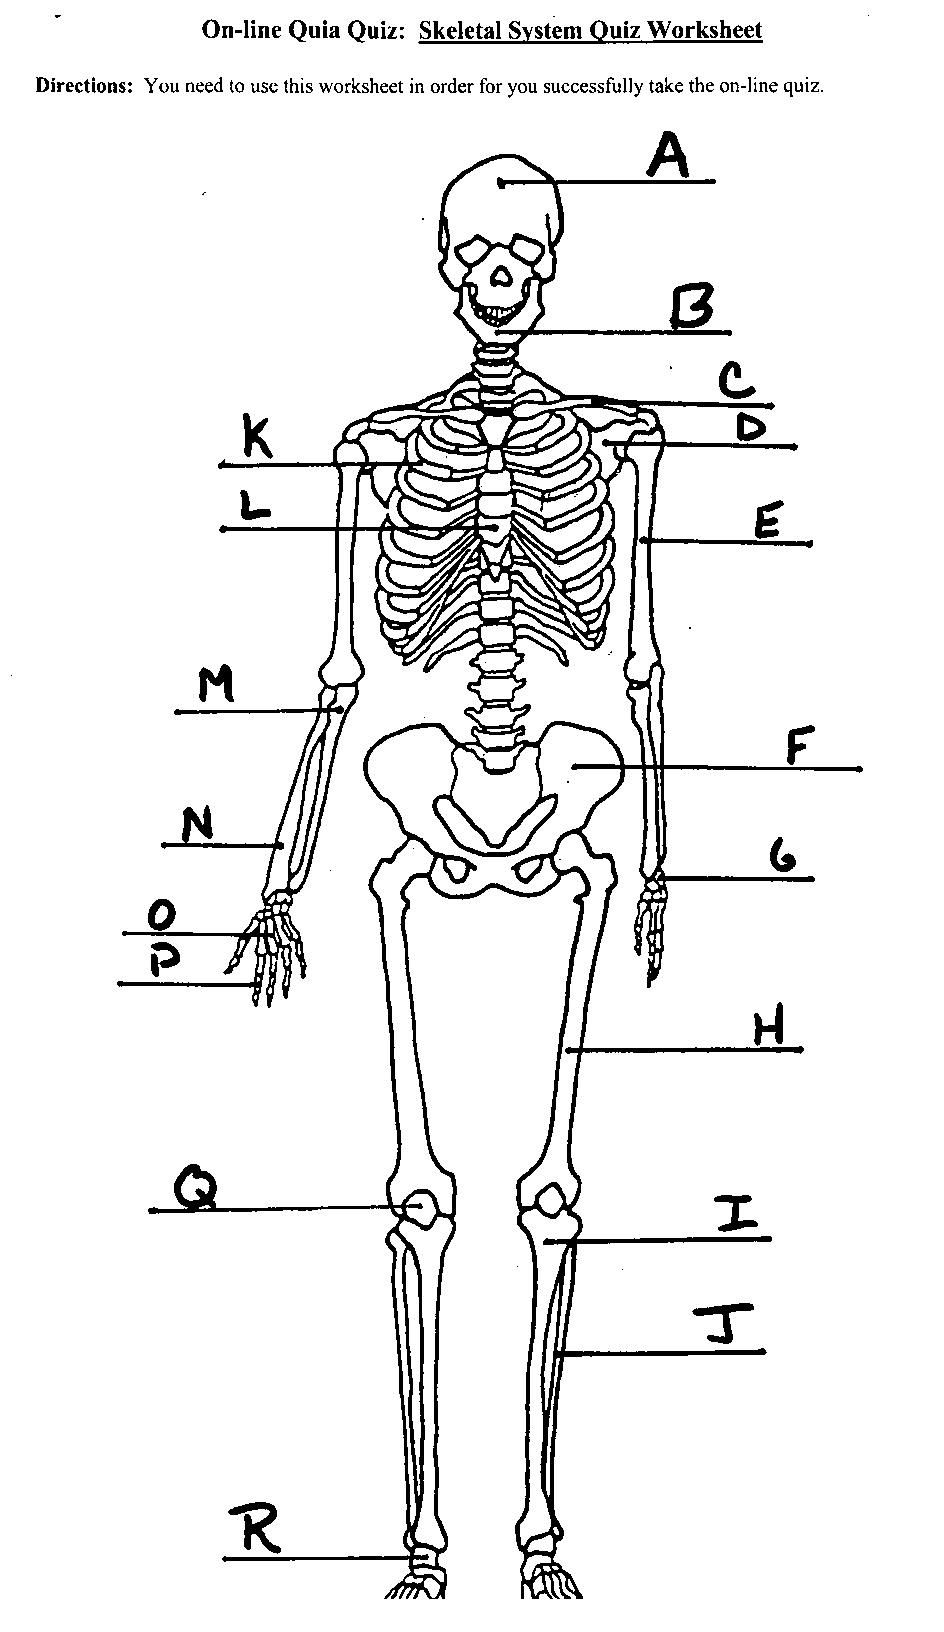 worksheet. The Skeletal System Worksheet Answers